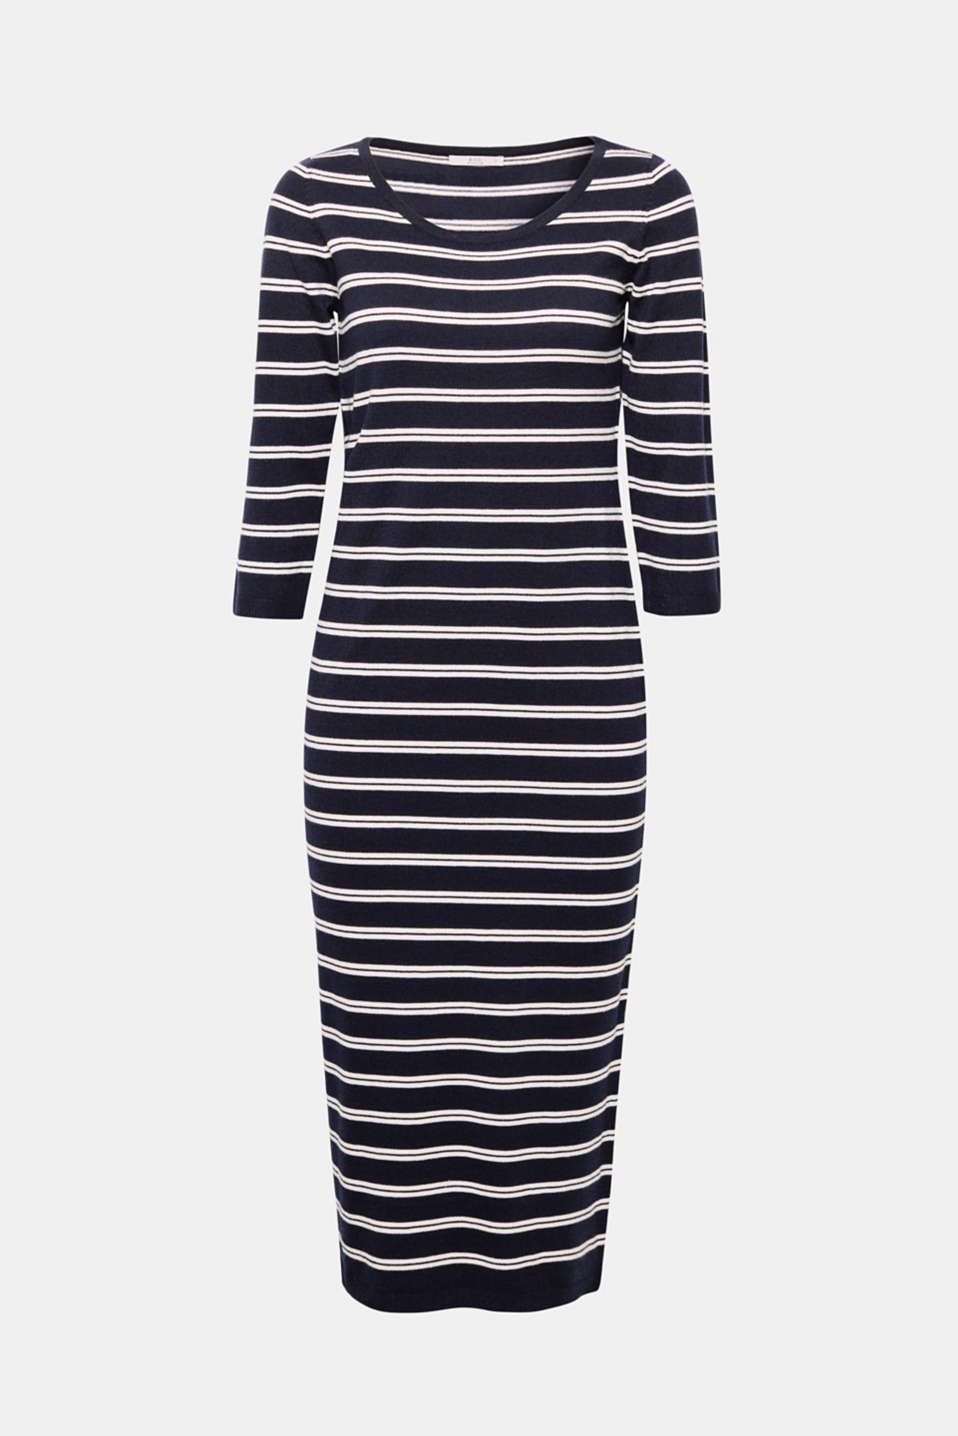 Casual, modern and super feminine at the same time! This dress in a fashionable midi length impresses with its fresh striped design and clean, slim silhouette.